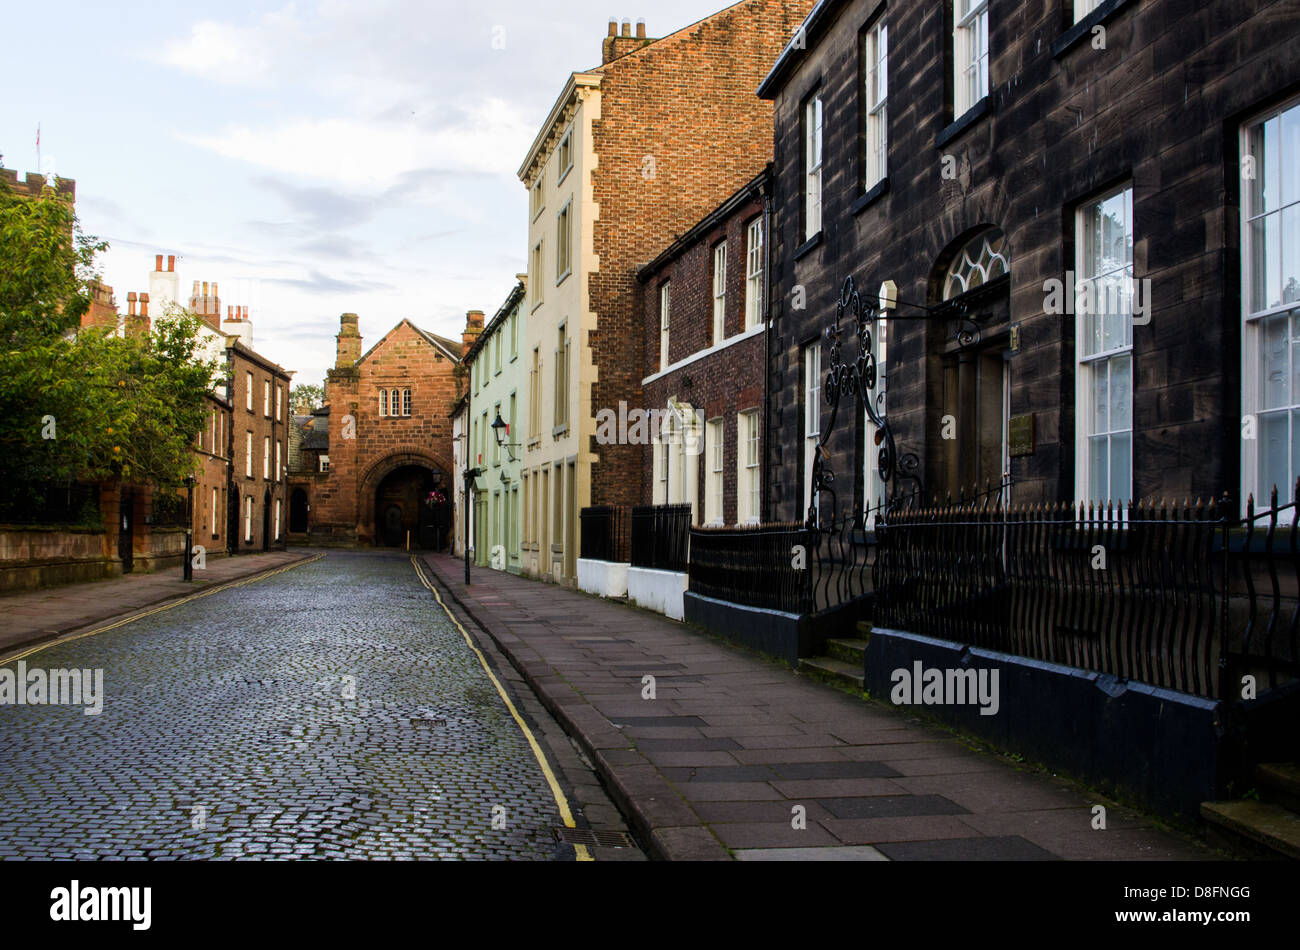 A street view in old town of Carlisle, UK. - Stock Image